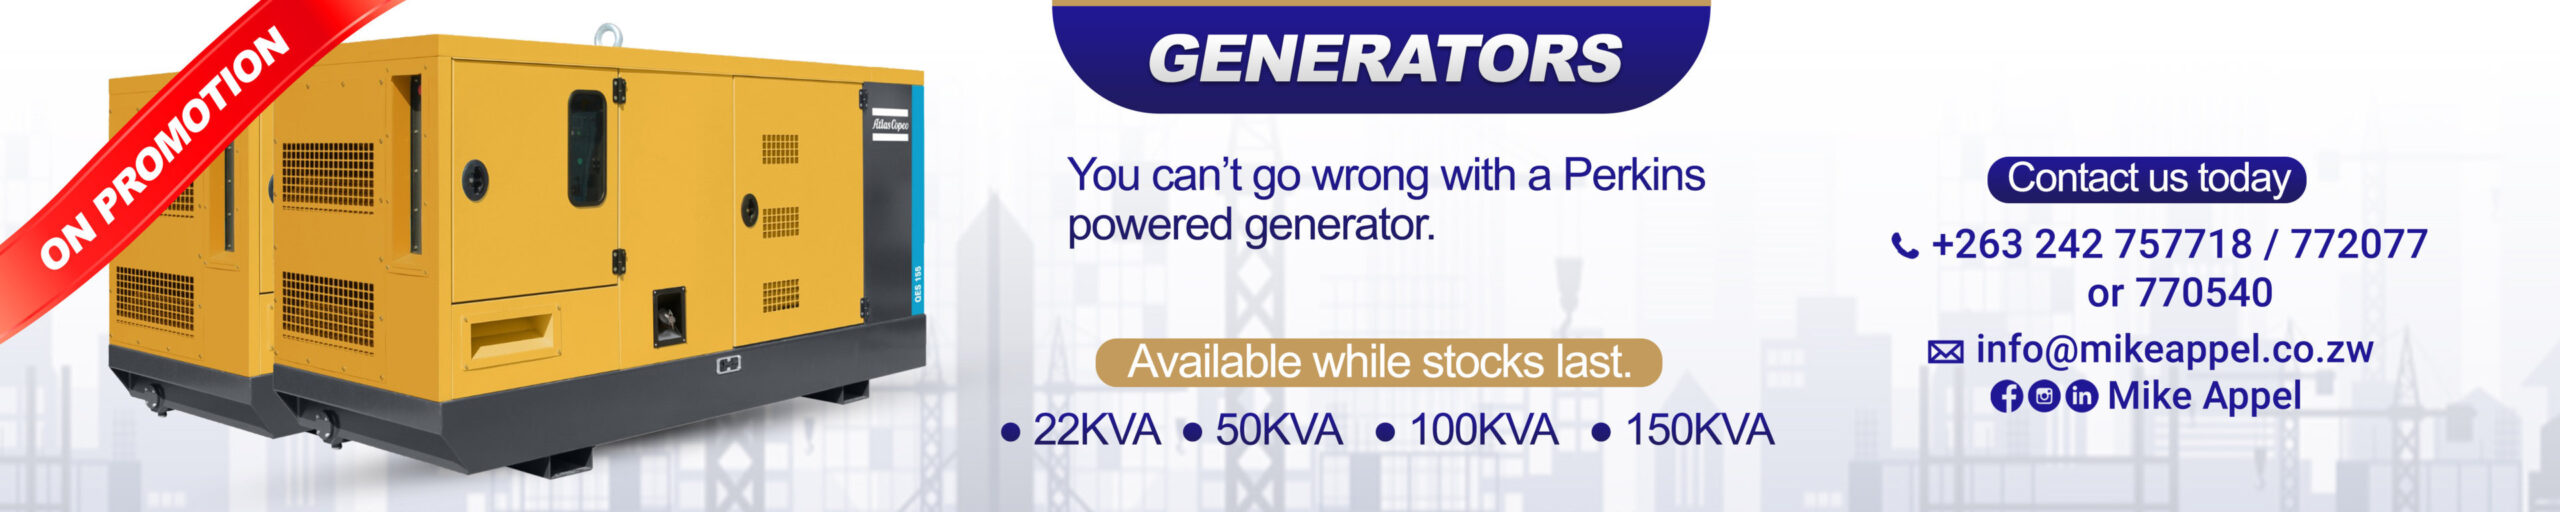 Generator Mike Appel Website-1 (small)